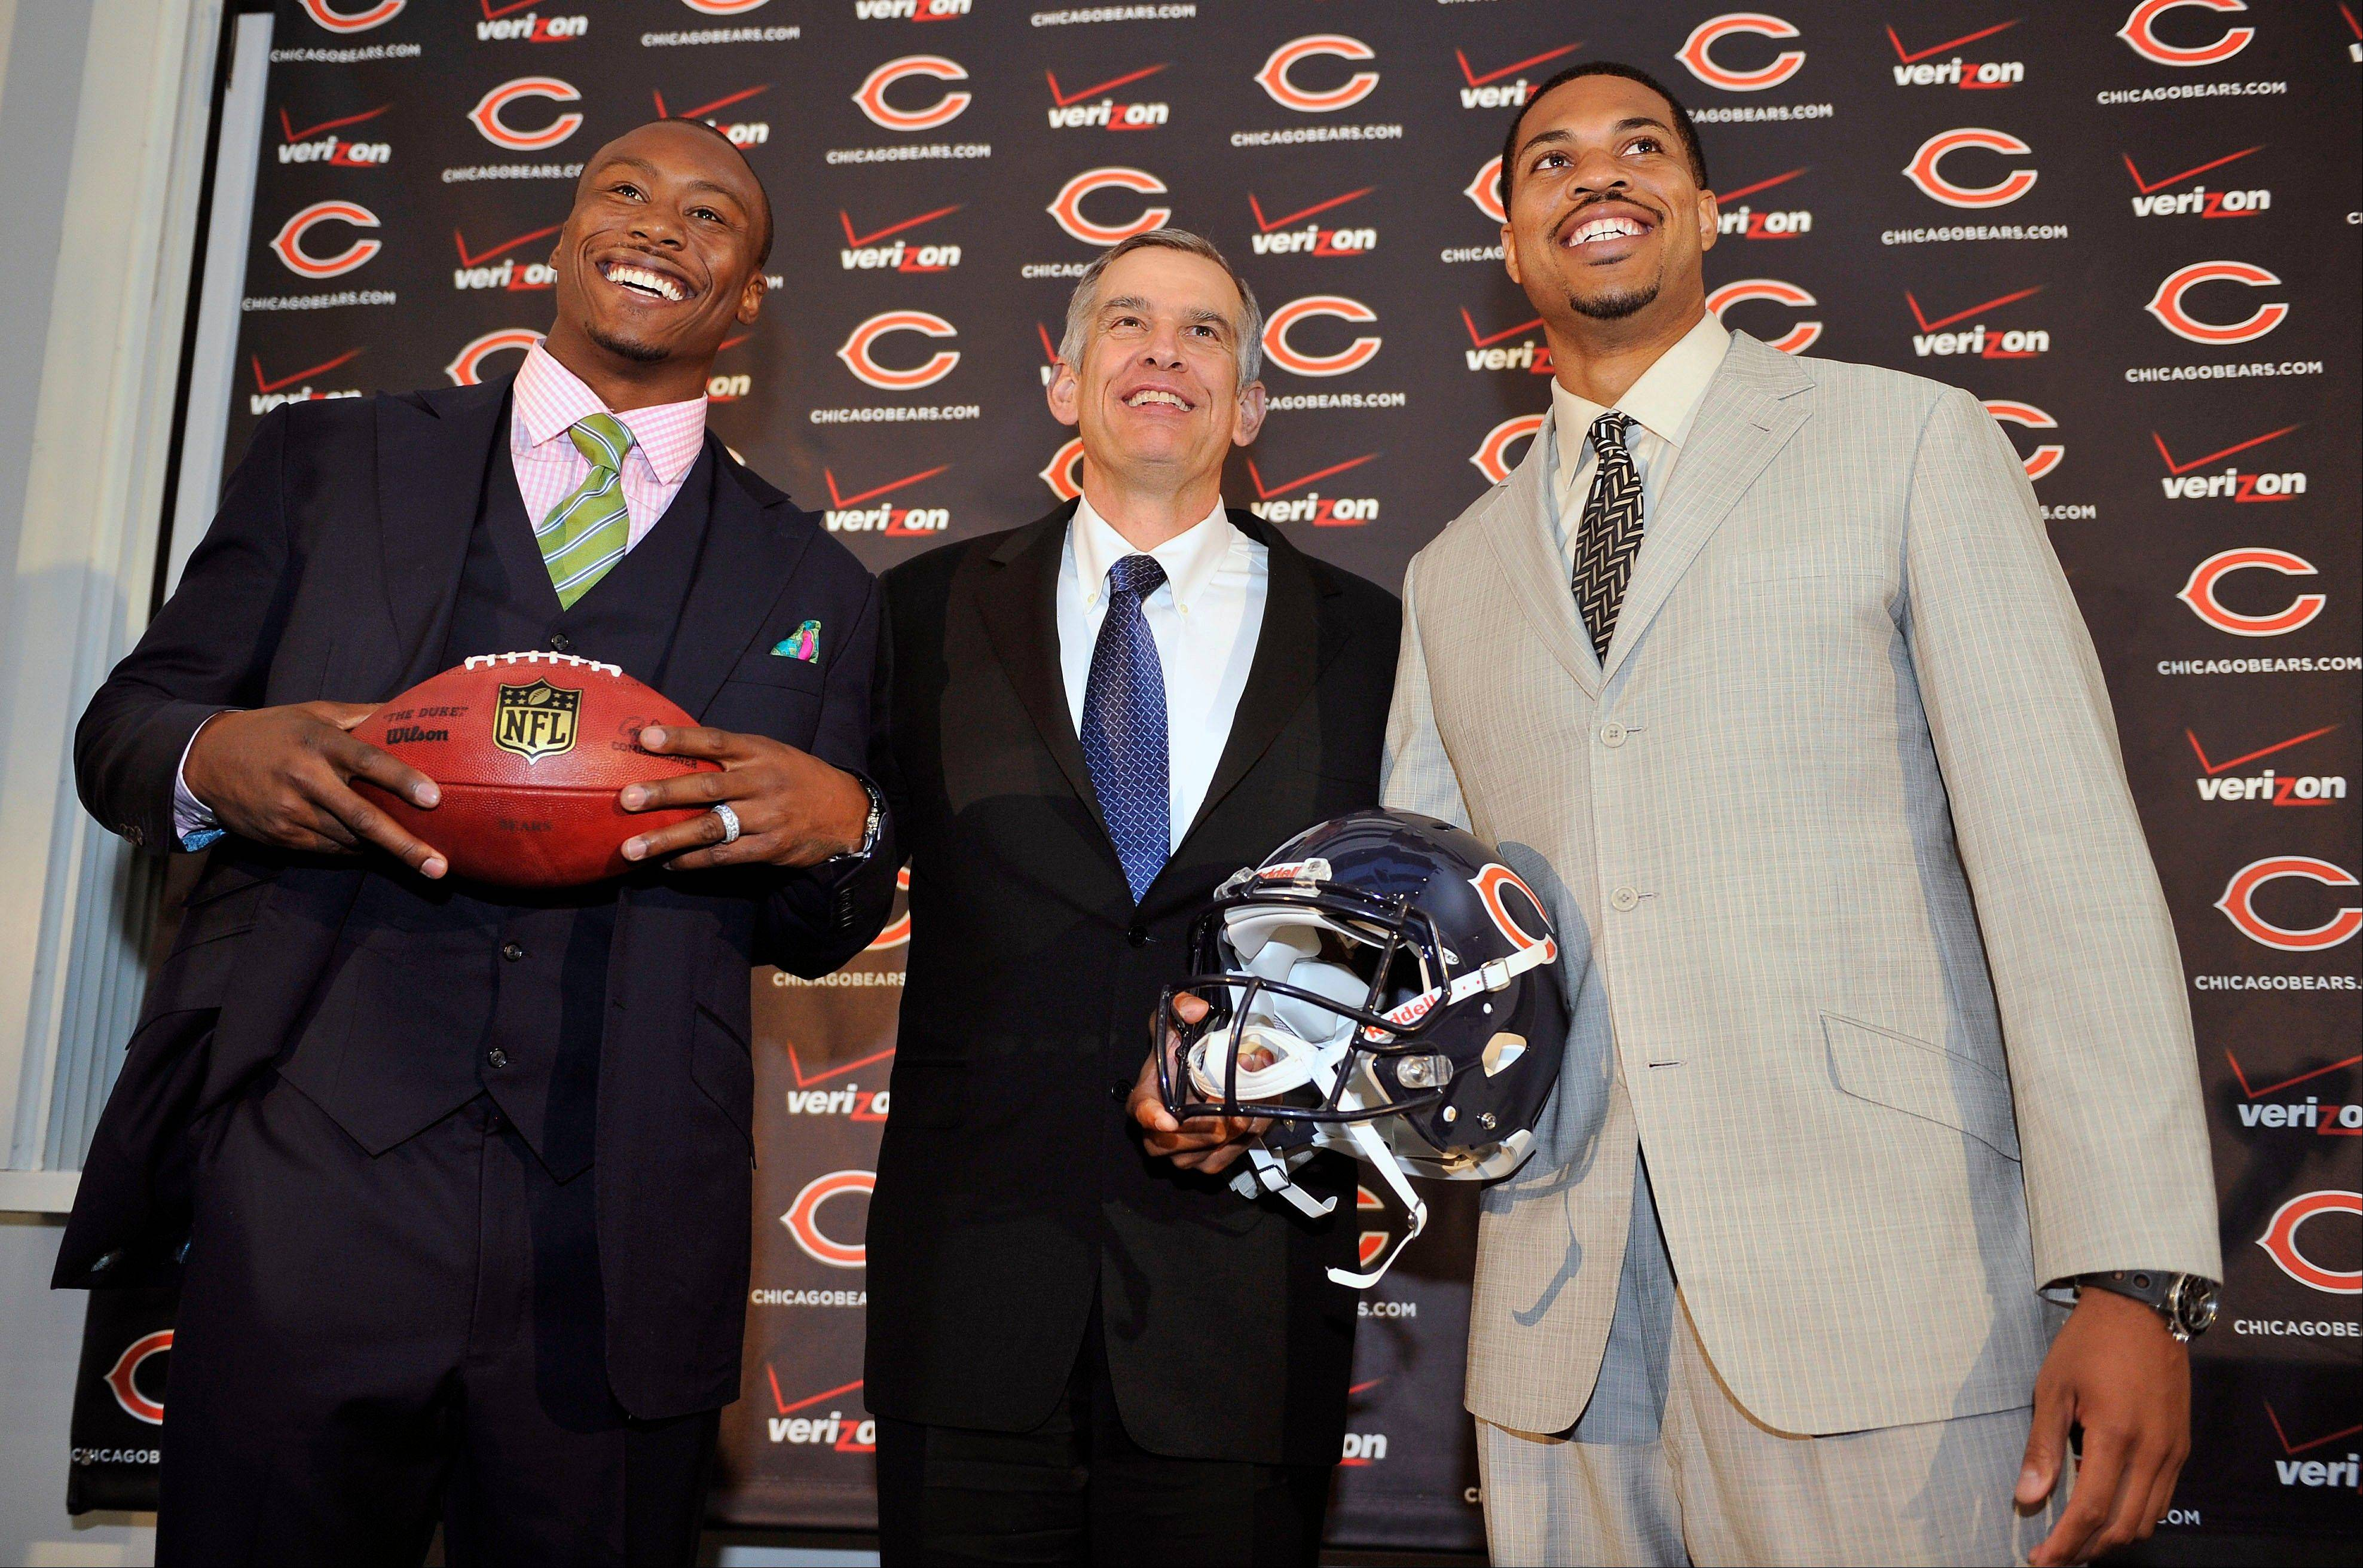 The two newest members of the Chicago Bears, wide receiver Brandon Marshall, left, and quarterback Jason Campbell, are welcomed to Chicago by general manager Phil Emery, center, during a news conference Friday.